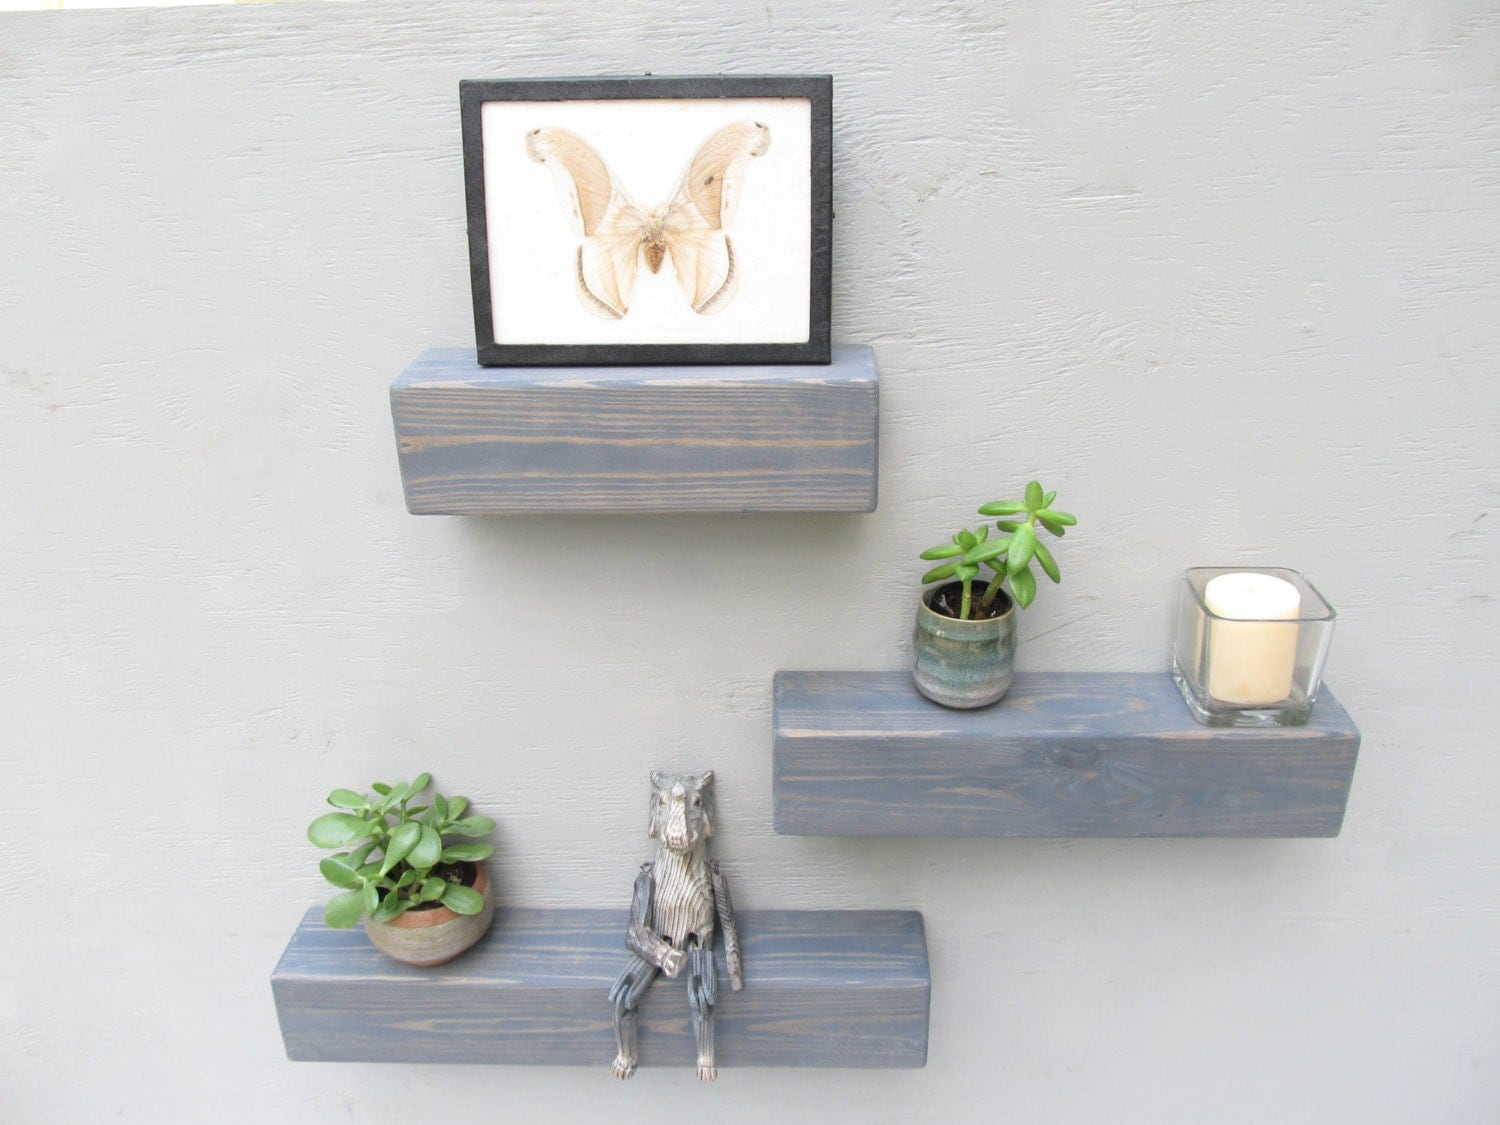 floating shelves wall shelf bathroom decor modern decor